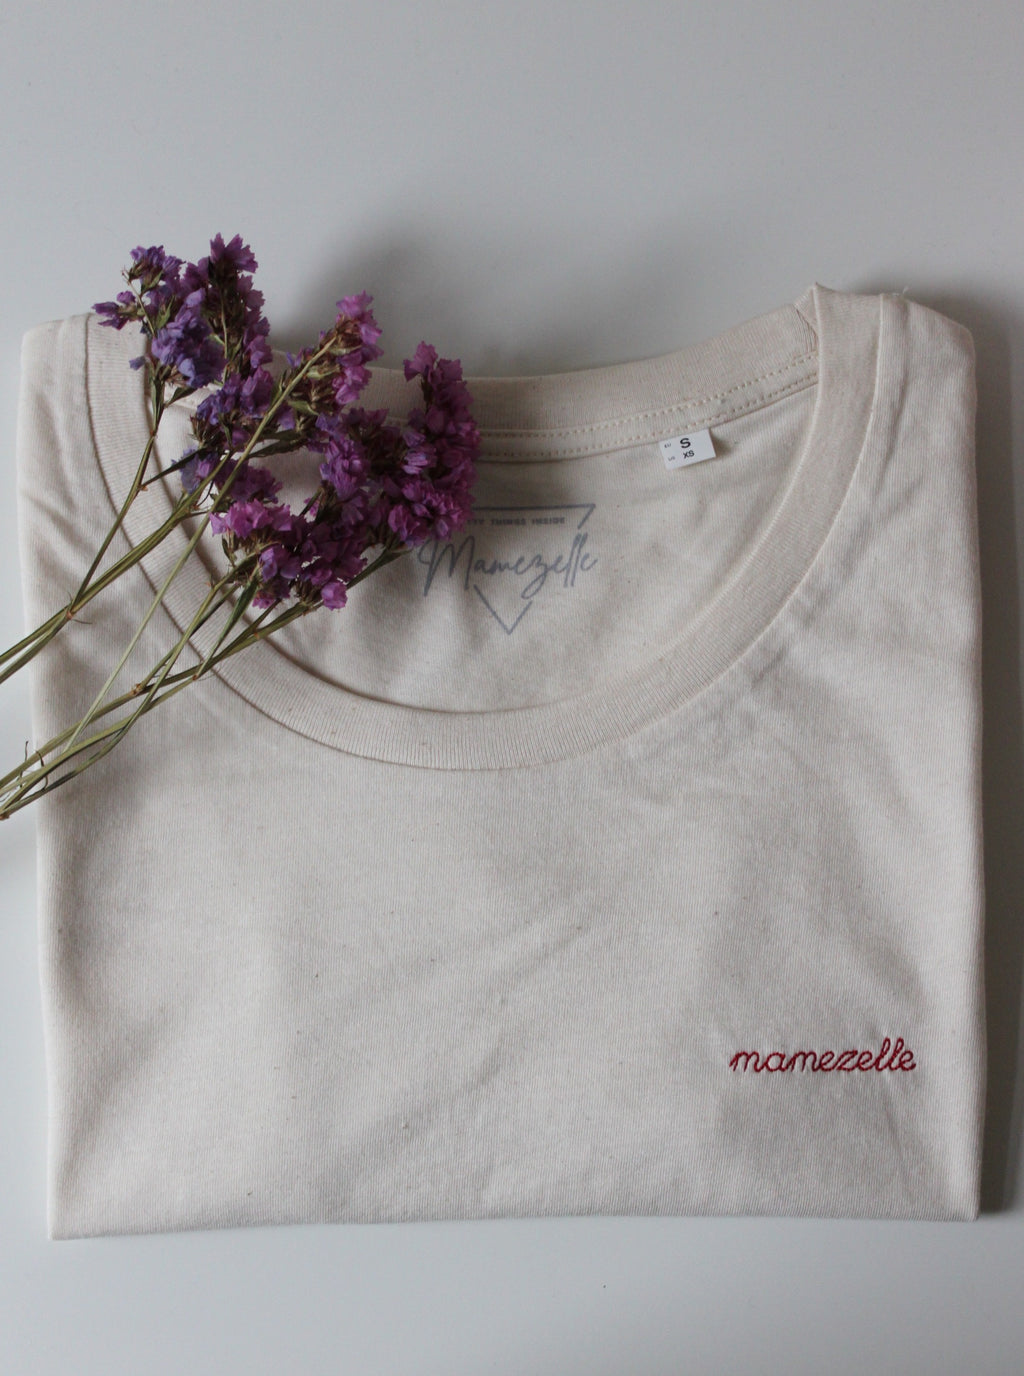 Mamezelle T-shirt Off White